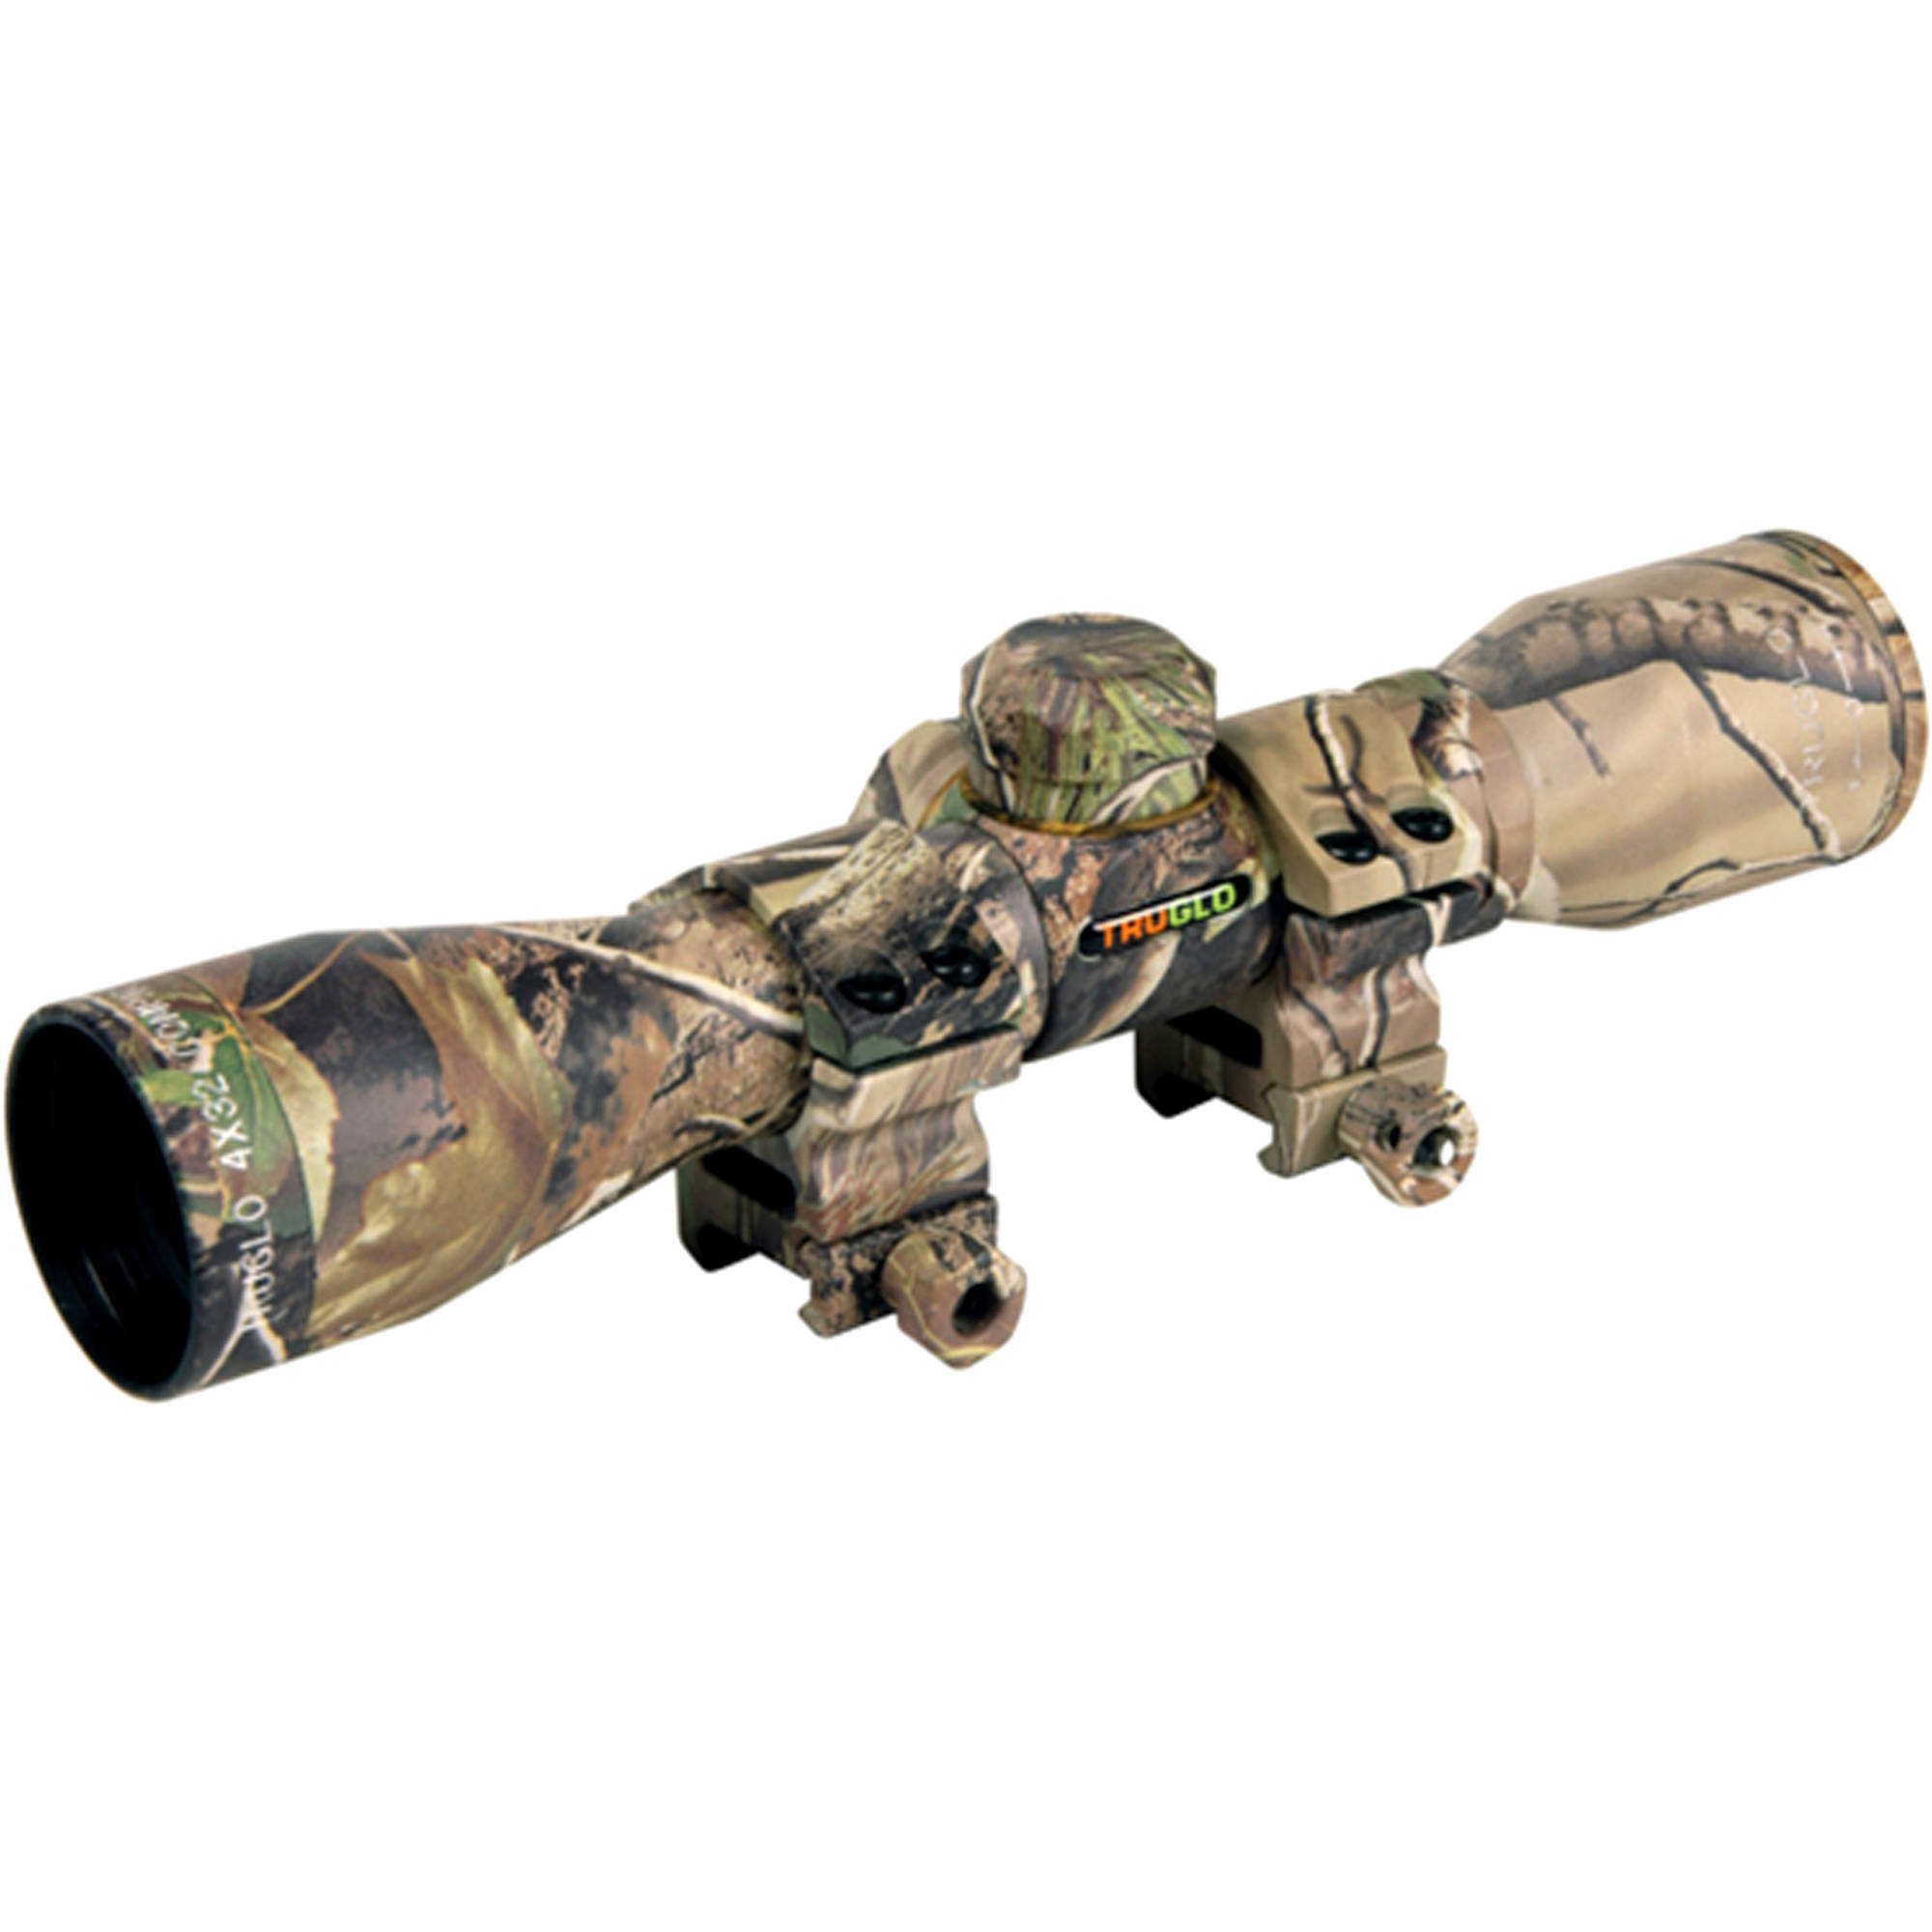 Truglo 4x32 Crossbow Scope with Rings, Camo